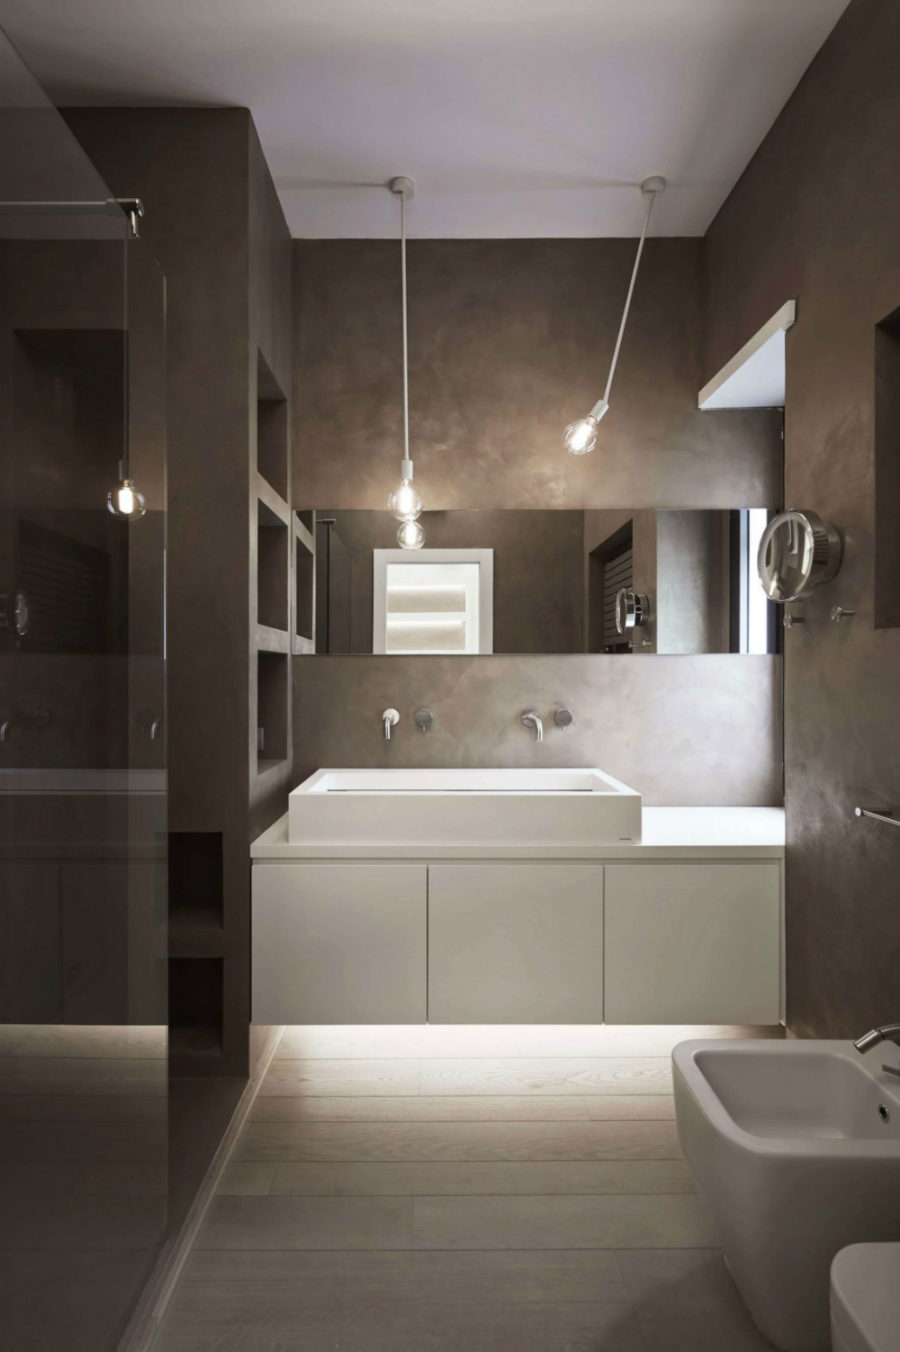 Concrete bathroom with white ambient lights